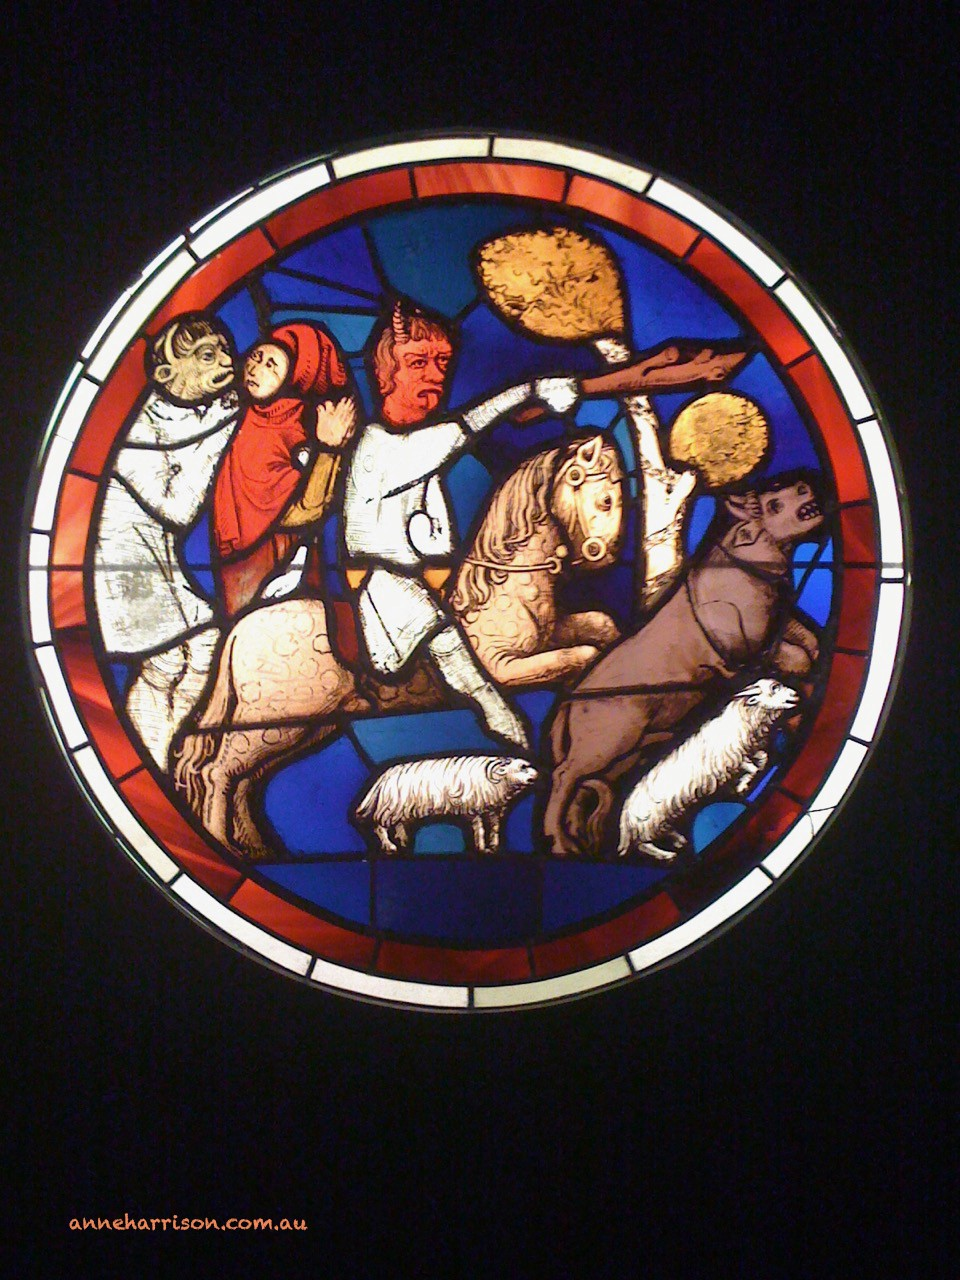 A medieval stained glass window showing Death on a horse